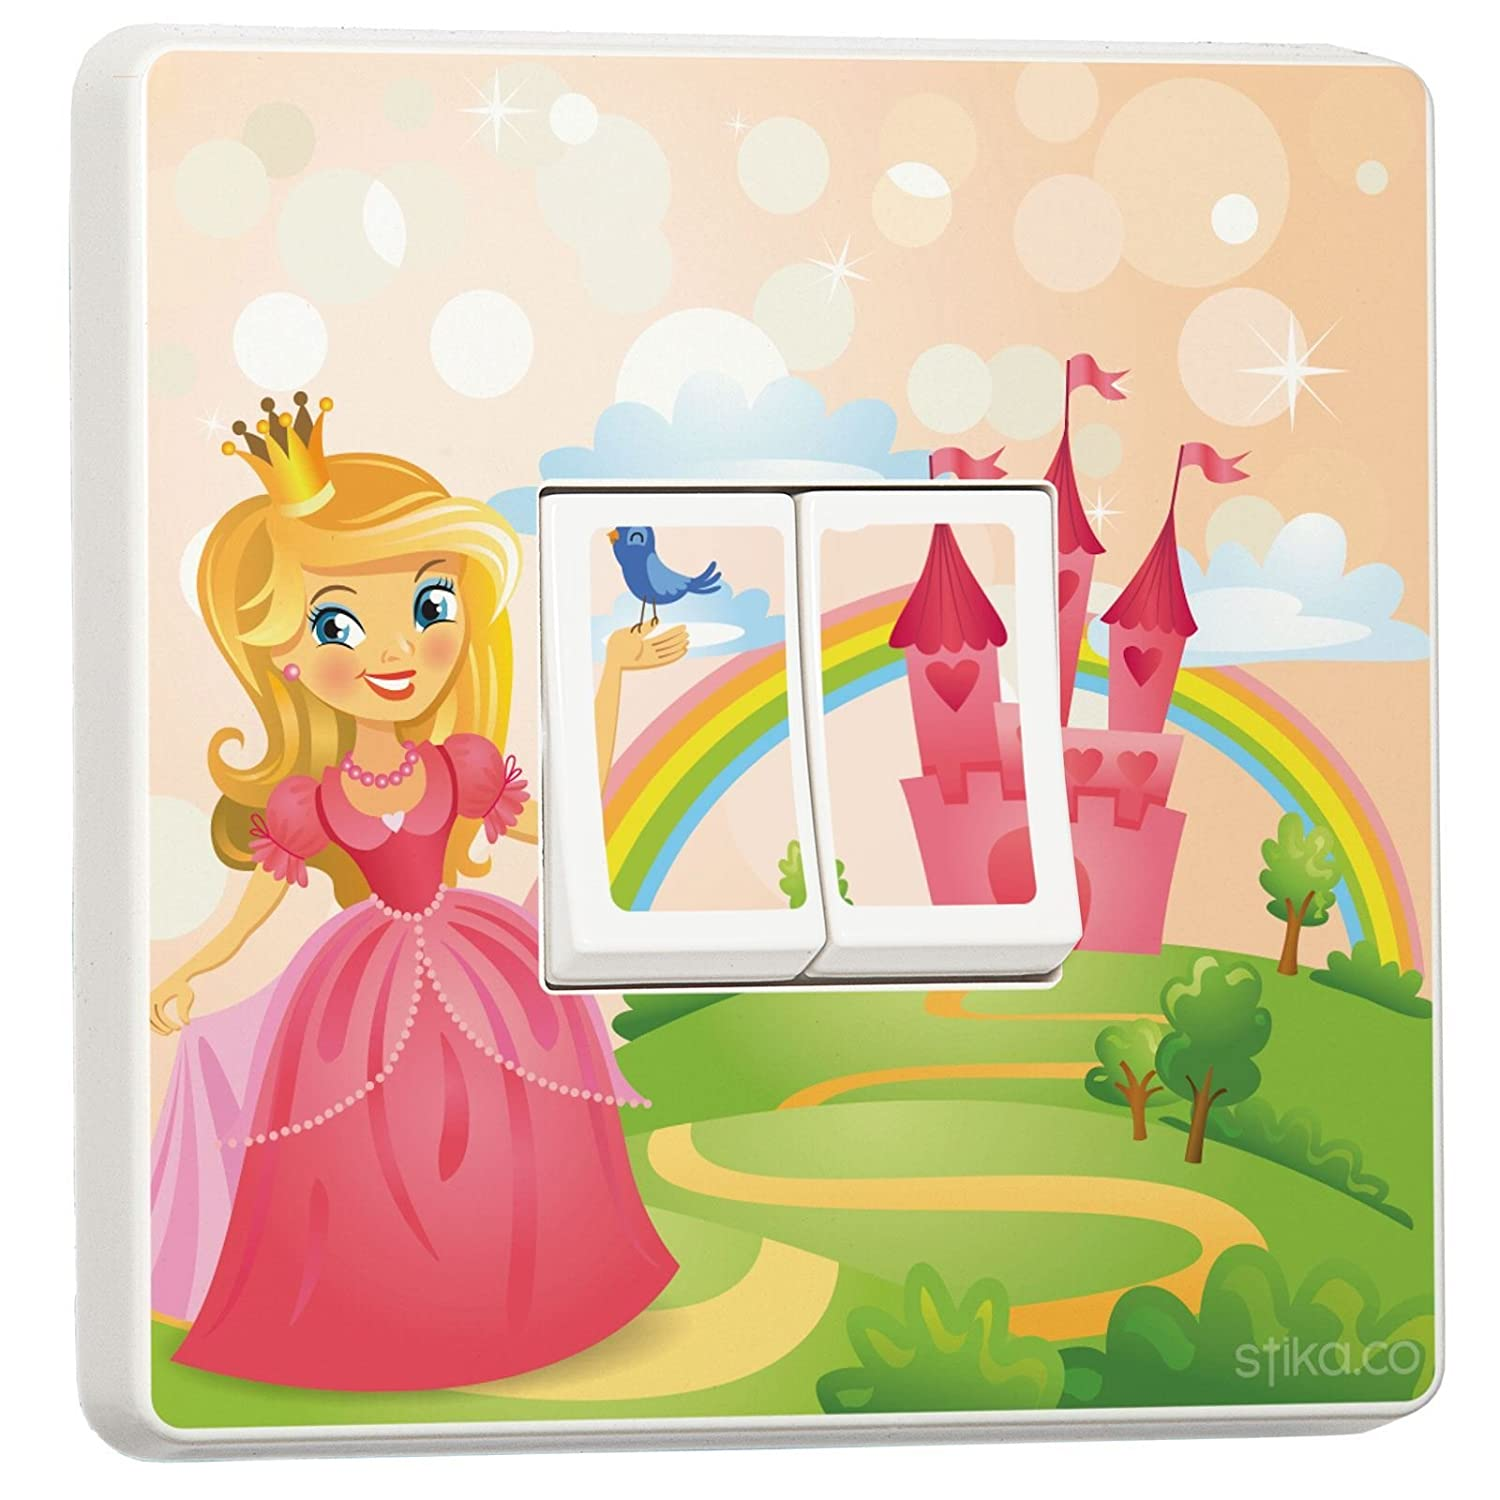 Fairy Princess and Roses Design for Double Light Switch Cover Vinyl Sticker stika.co